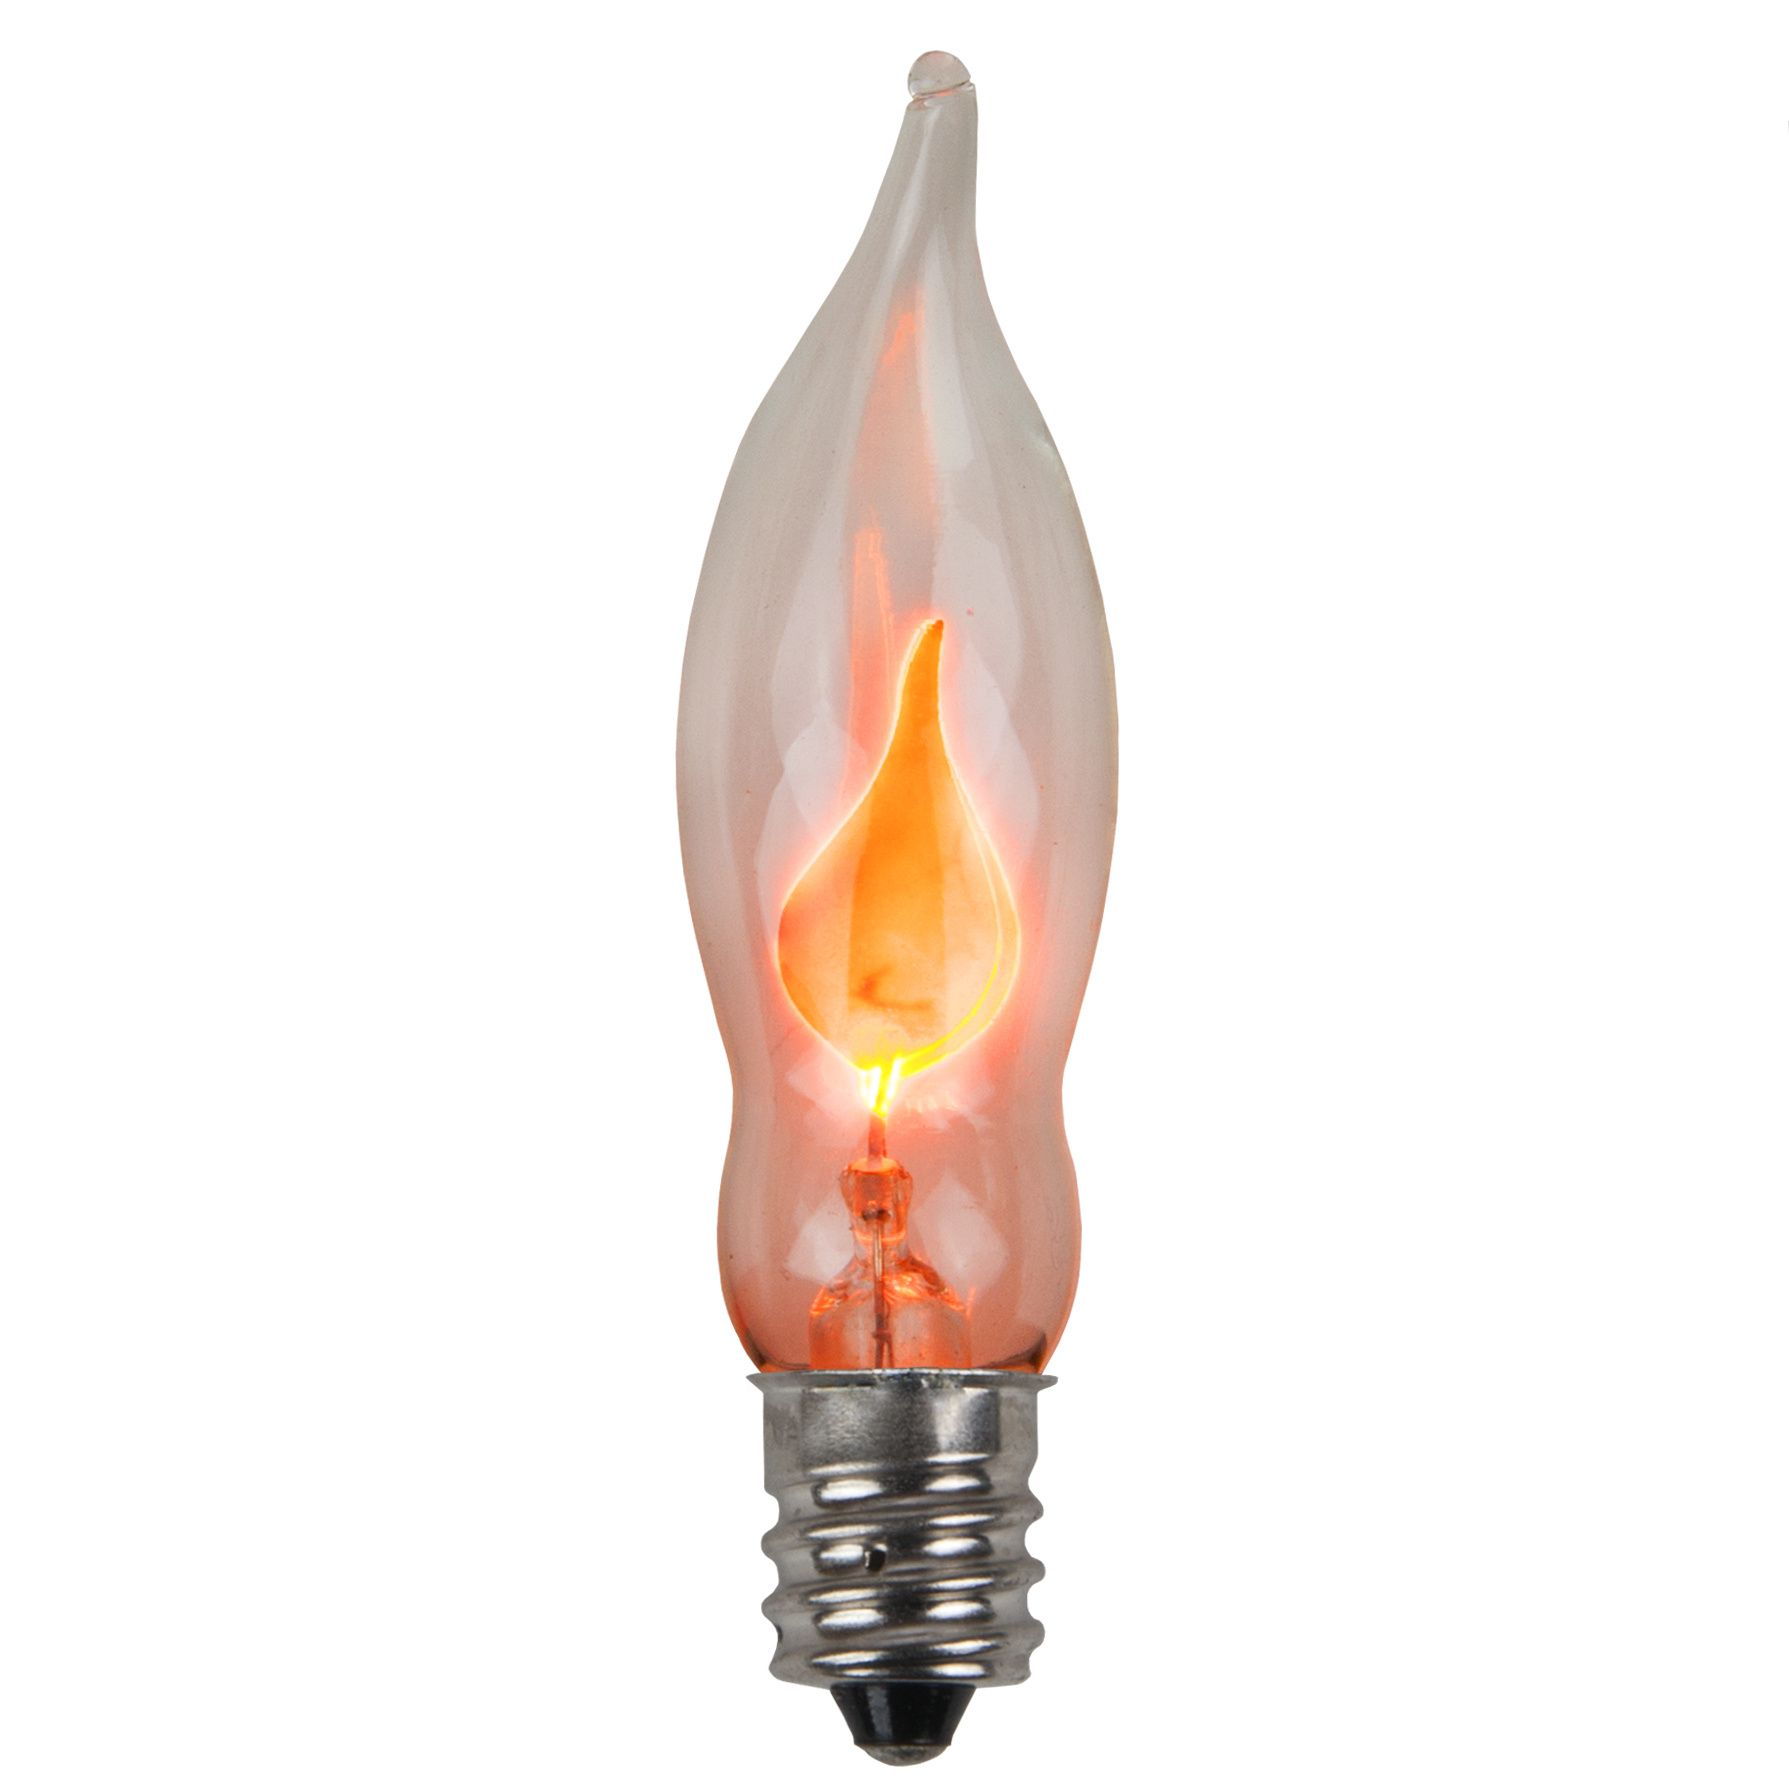 C7 Christmas Light Bulb C7 Flicker Flame Clear Christmas Light Bulbs Pack Of 2 Christmas Lights Etc Light Bulb Candle Outdoor Light Bulbs Flickering Candles